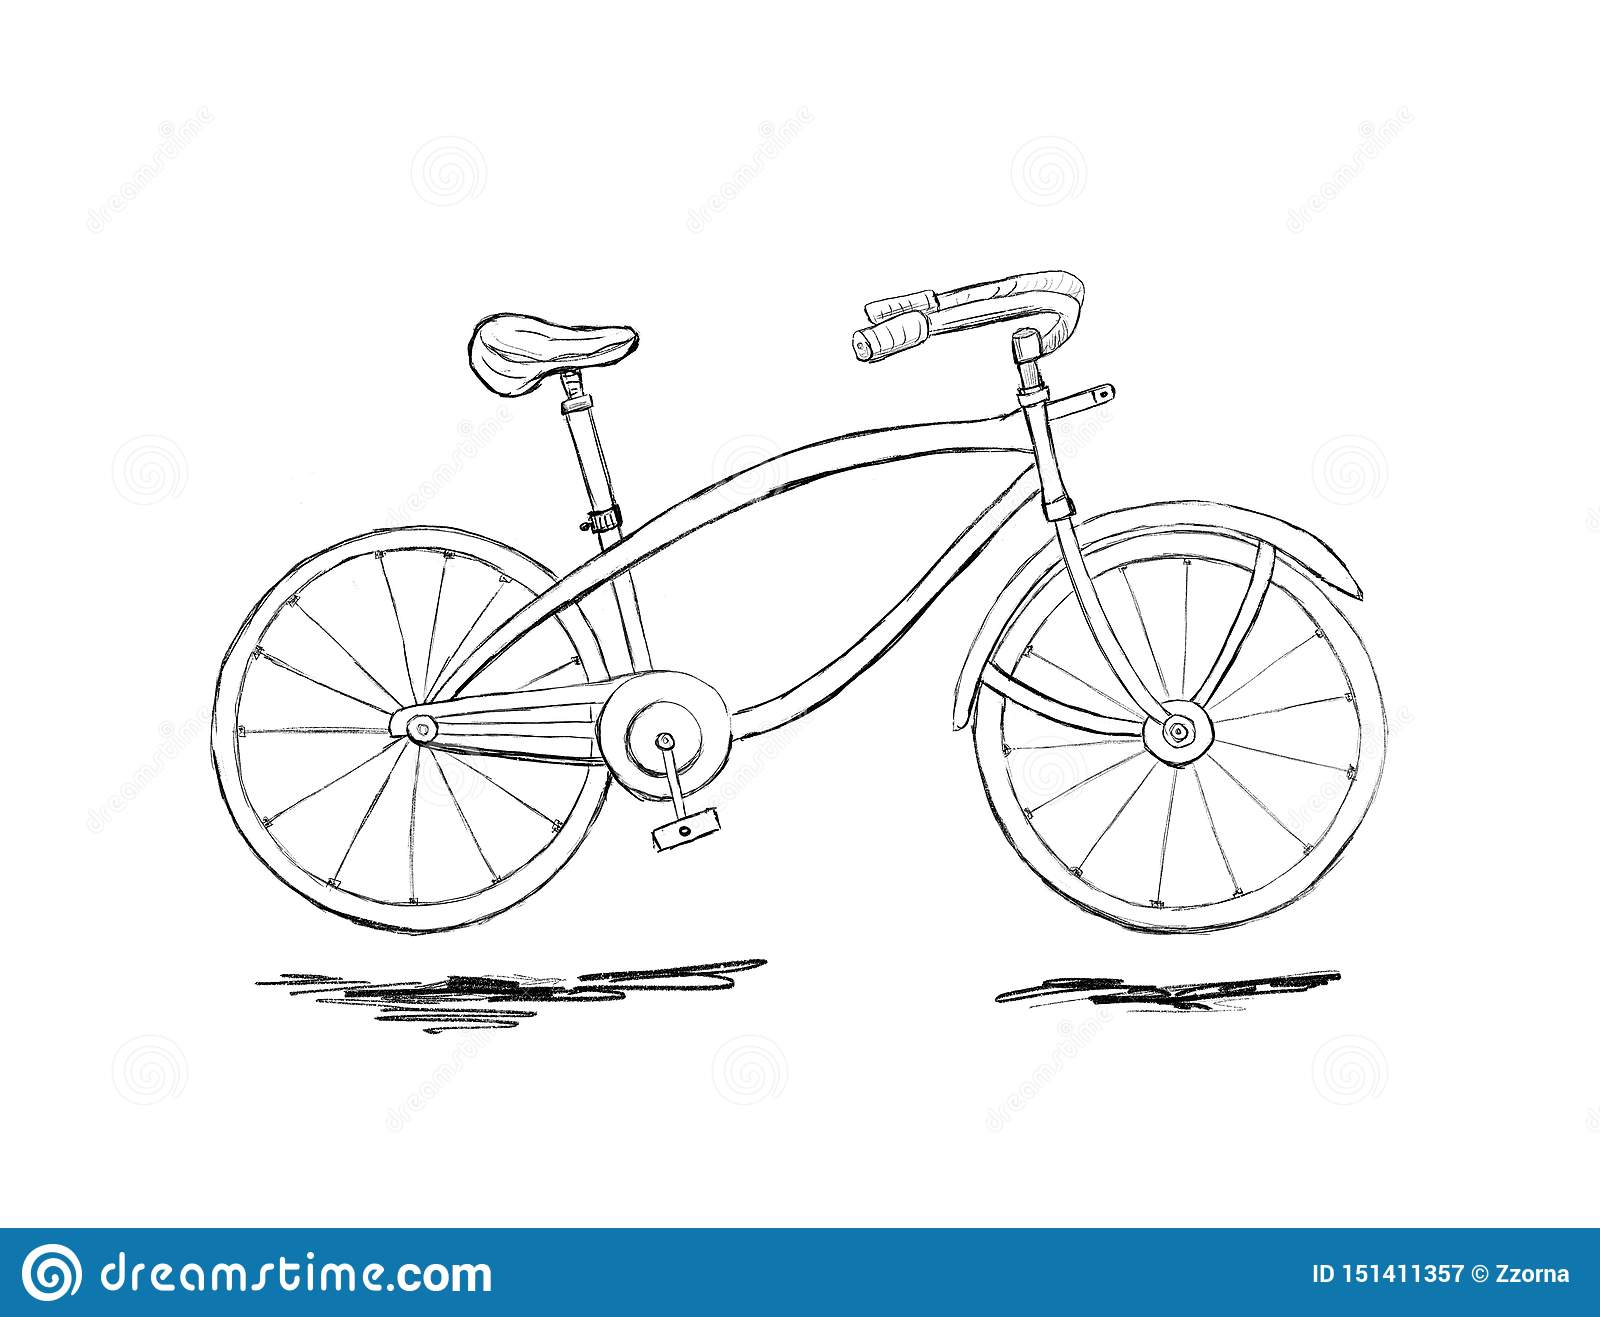 Graphic sketch of bicycle stock image image of bikes 151411357